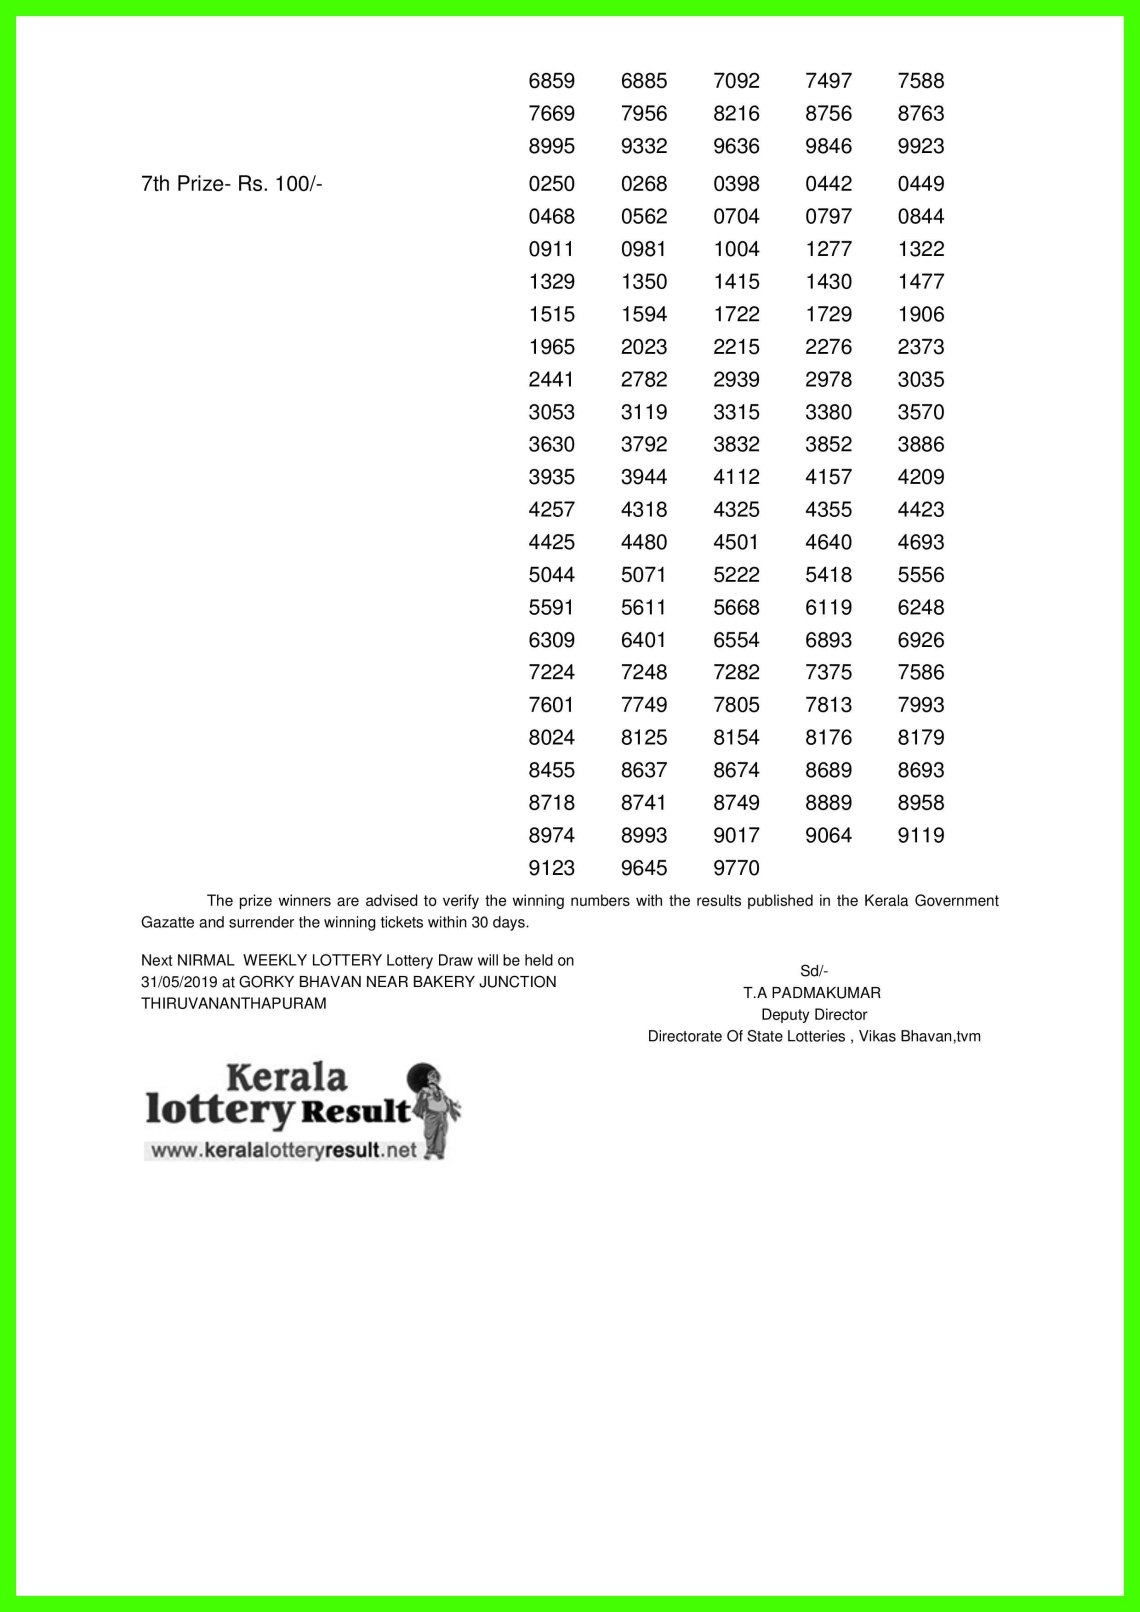 NIRMAL WEEKLY LOTTERY LOTTERY NO. NR-122nd DRAW held on 24.05.2019-page-002